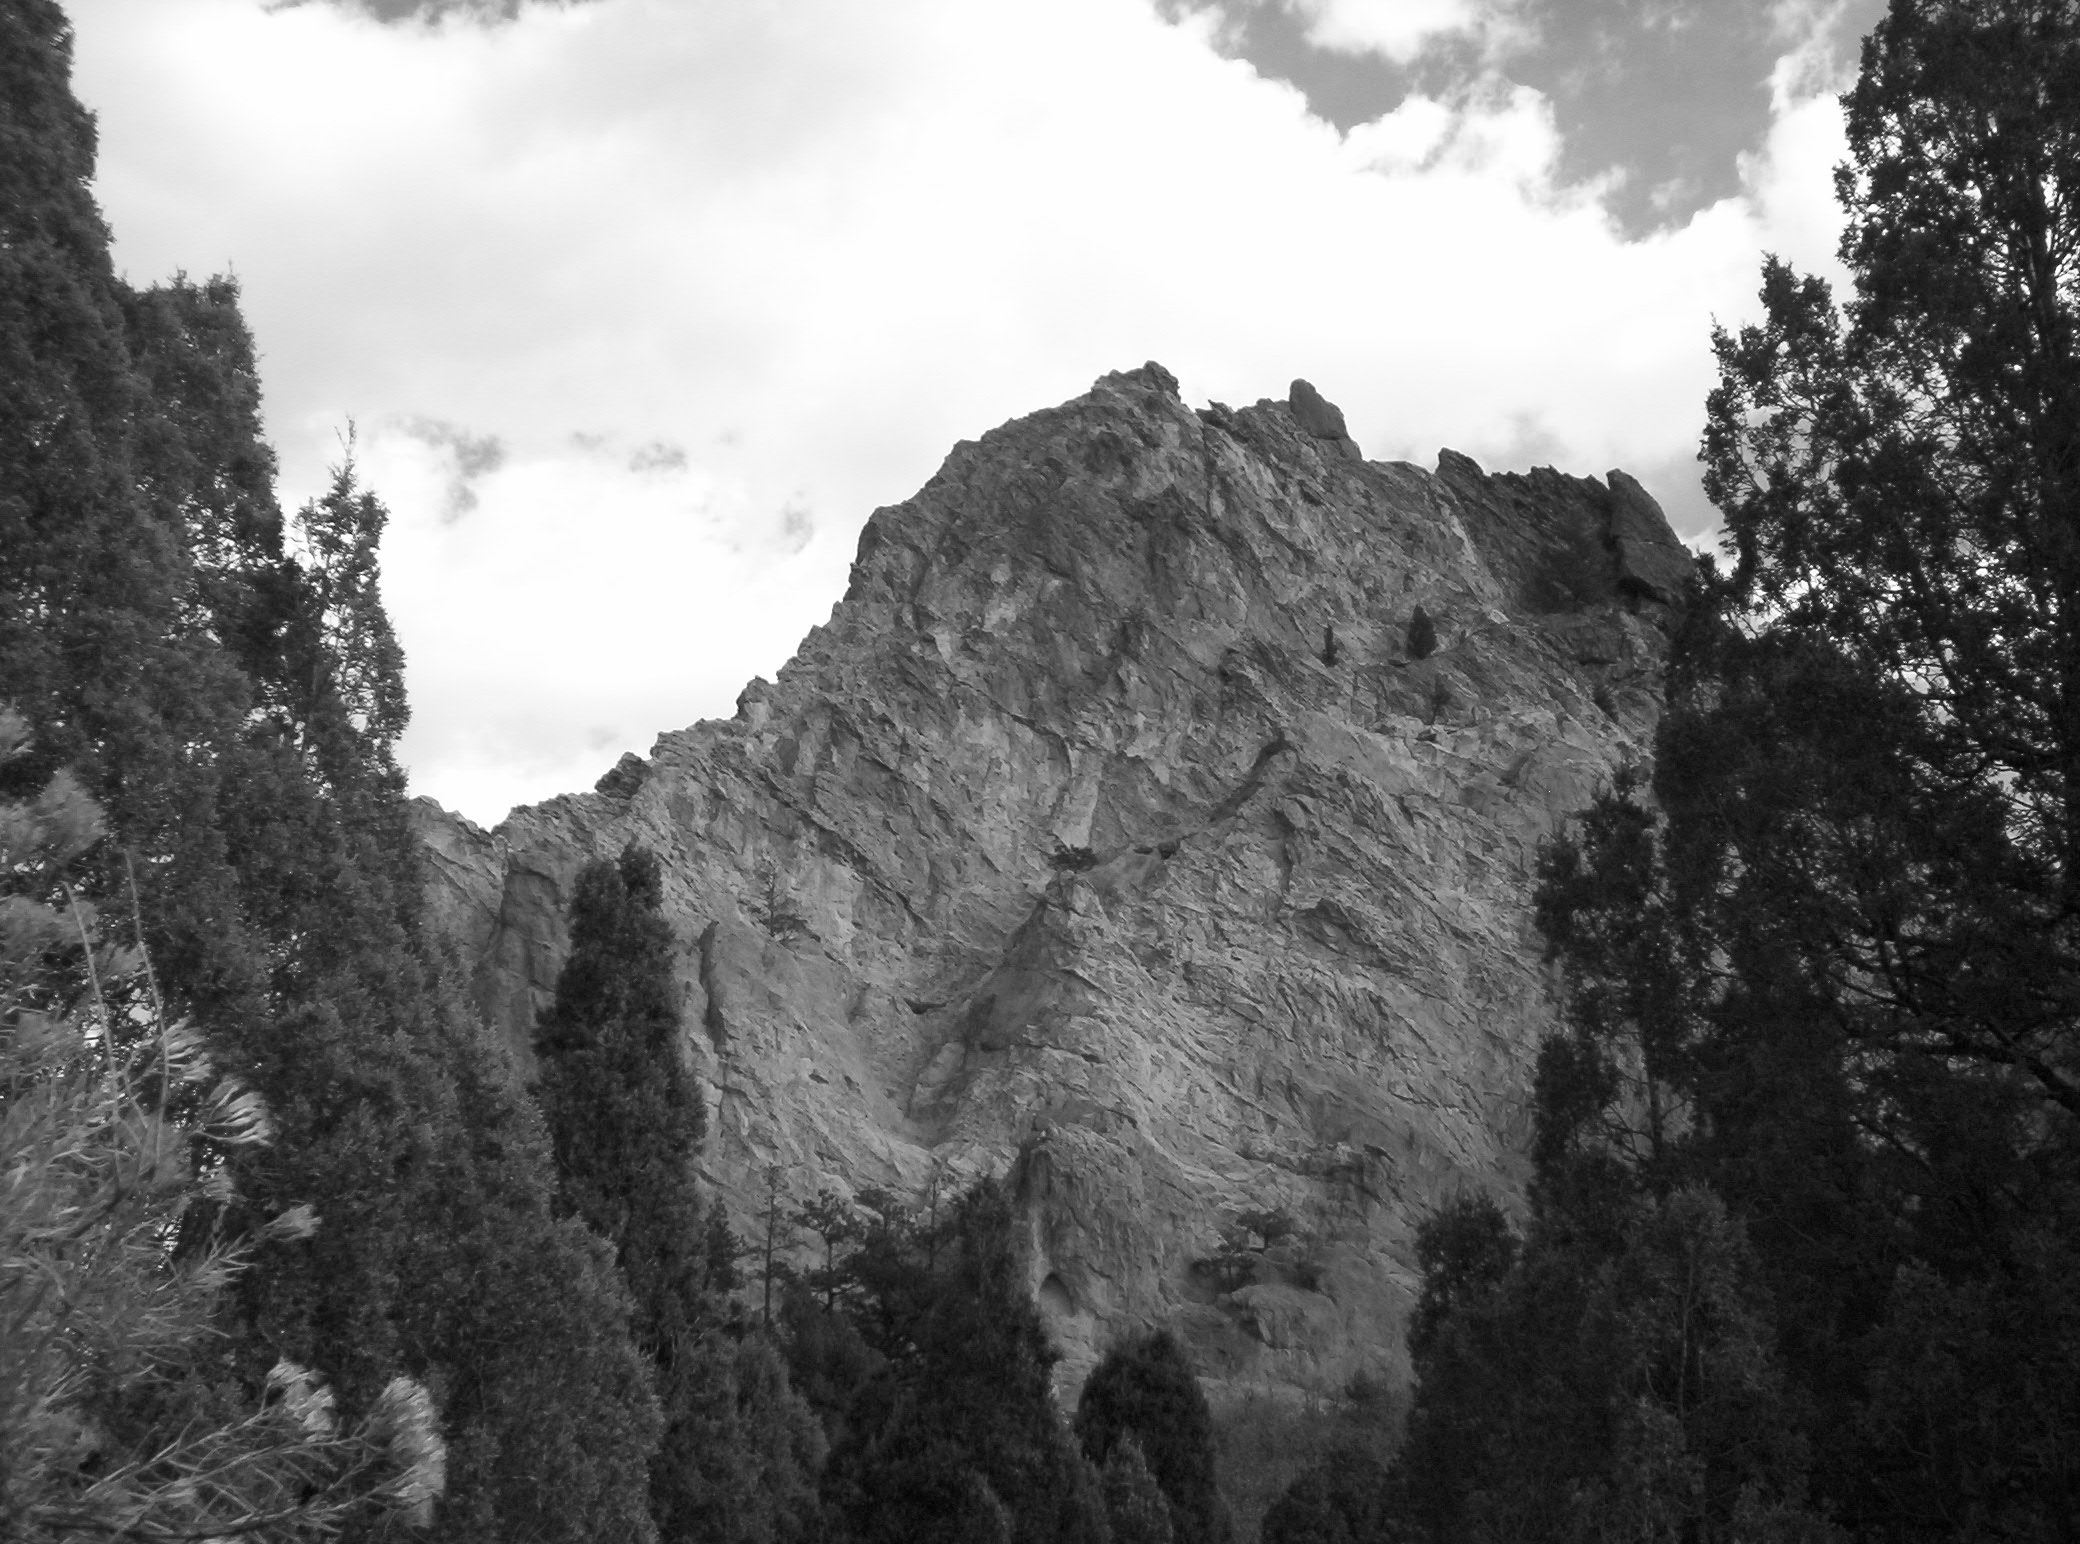 Lonesome Cliff - Copyright ©2008 David M. Bandler, All Rights Reserved.